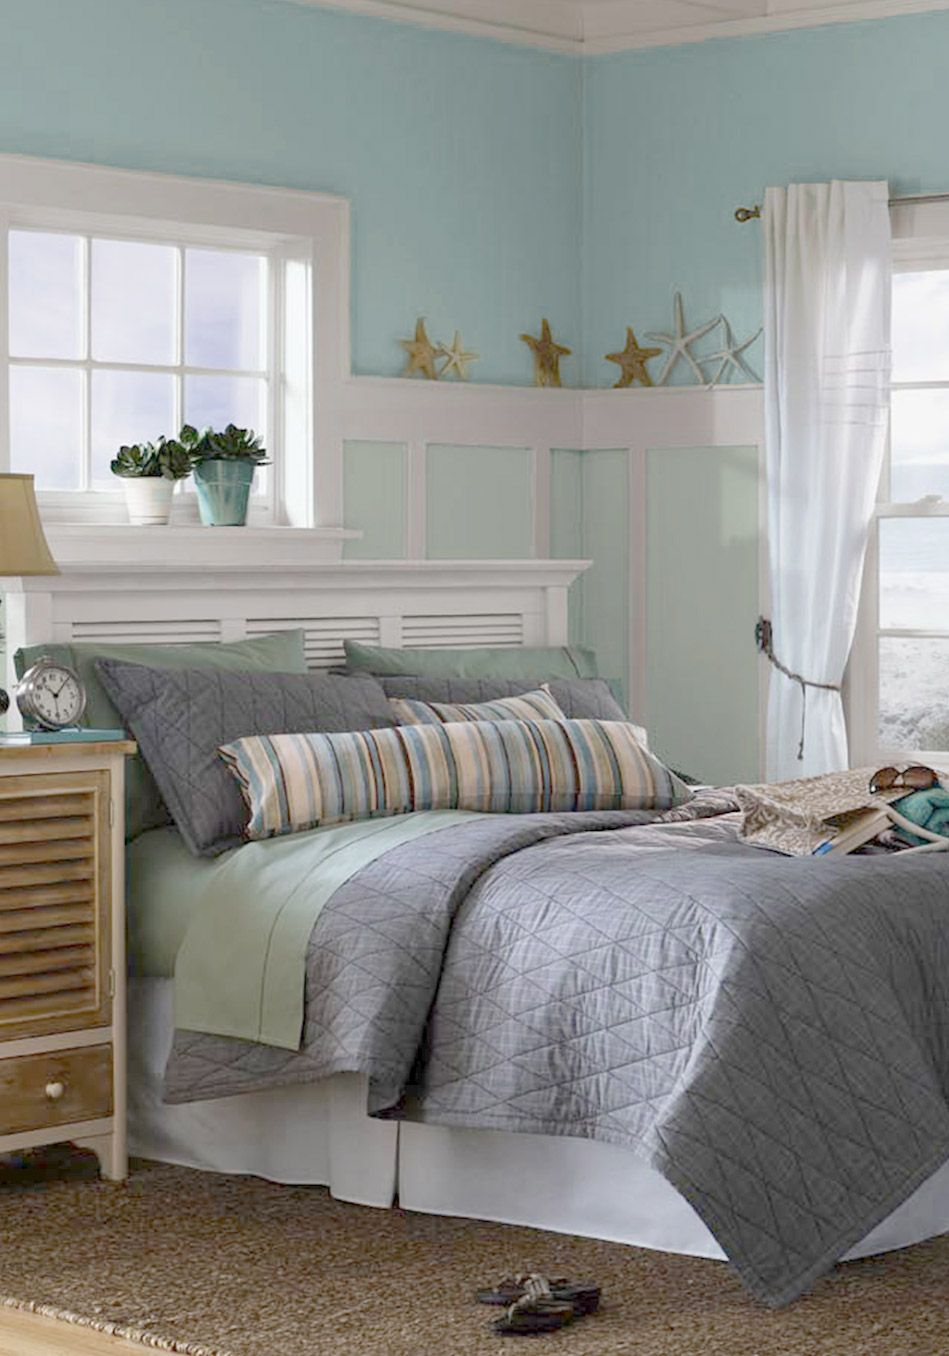 8 Incredible Paint Colors for Your Bedroom Best bedroom